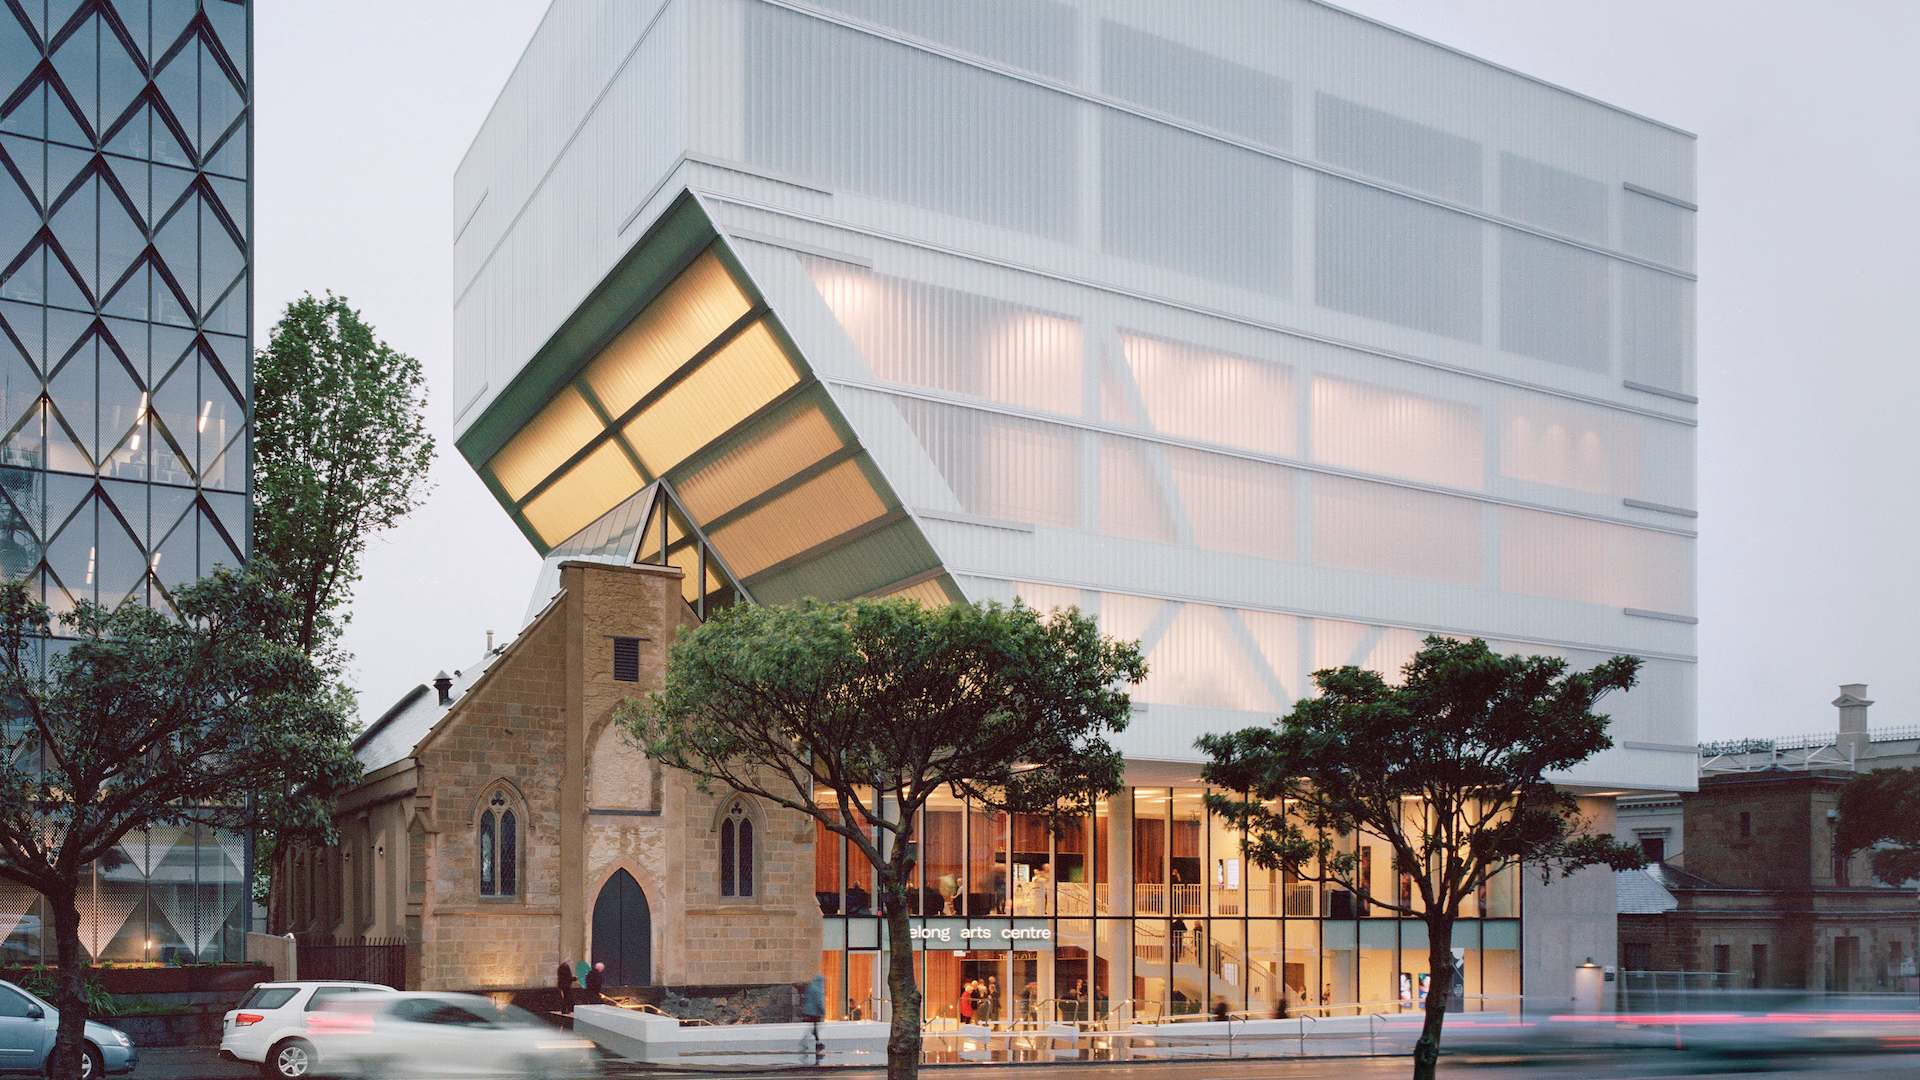 The Geelong Arts Centre Revamp Will Feature a New Series of First Nations Artwork